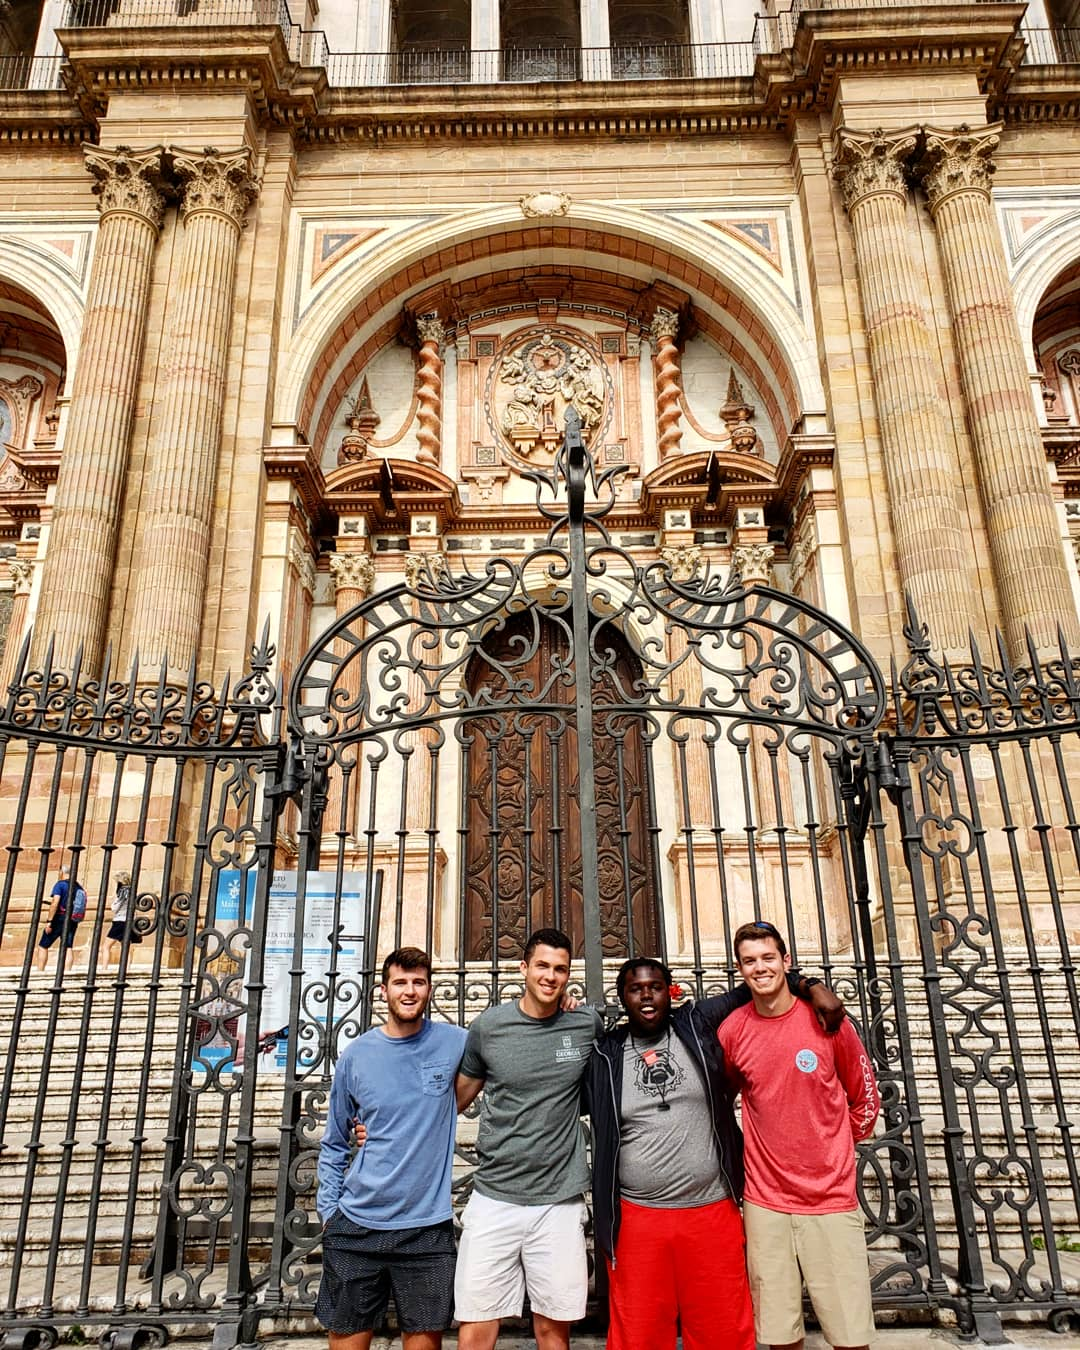 College of Agricultural and Environmental Sciences students Chad Cain, Sam Bignault, Joshua Toran and Logan Waldrop pose in front of a cathedral in Malaga, Spain, during the Spain: Food Production, Culture and the Environment study abroad program in 2019.